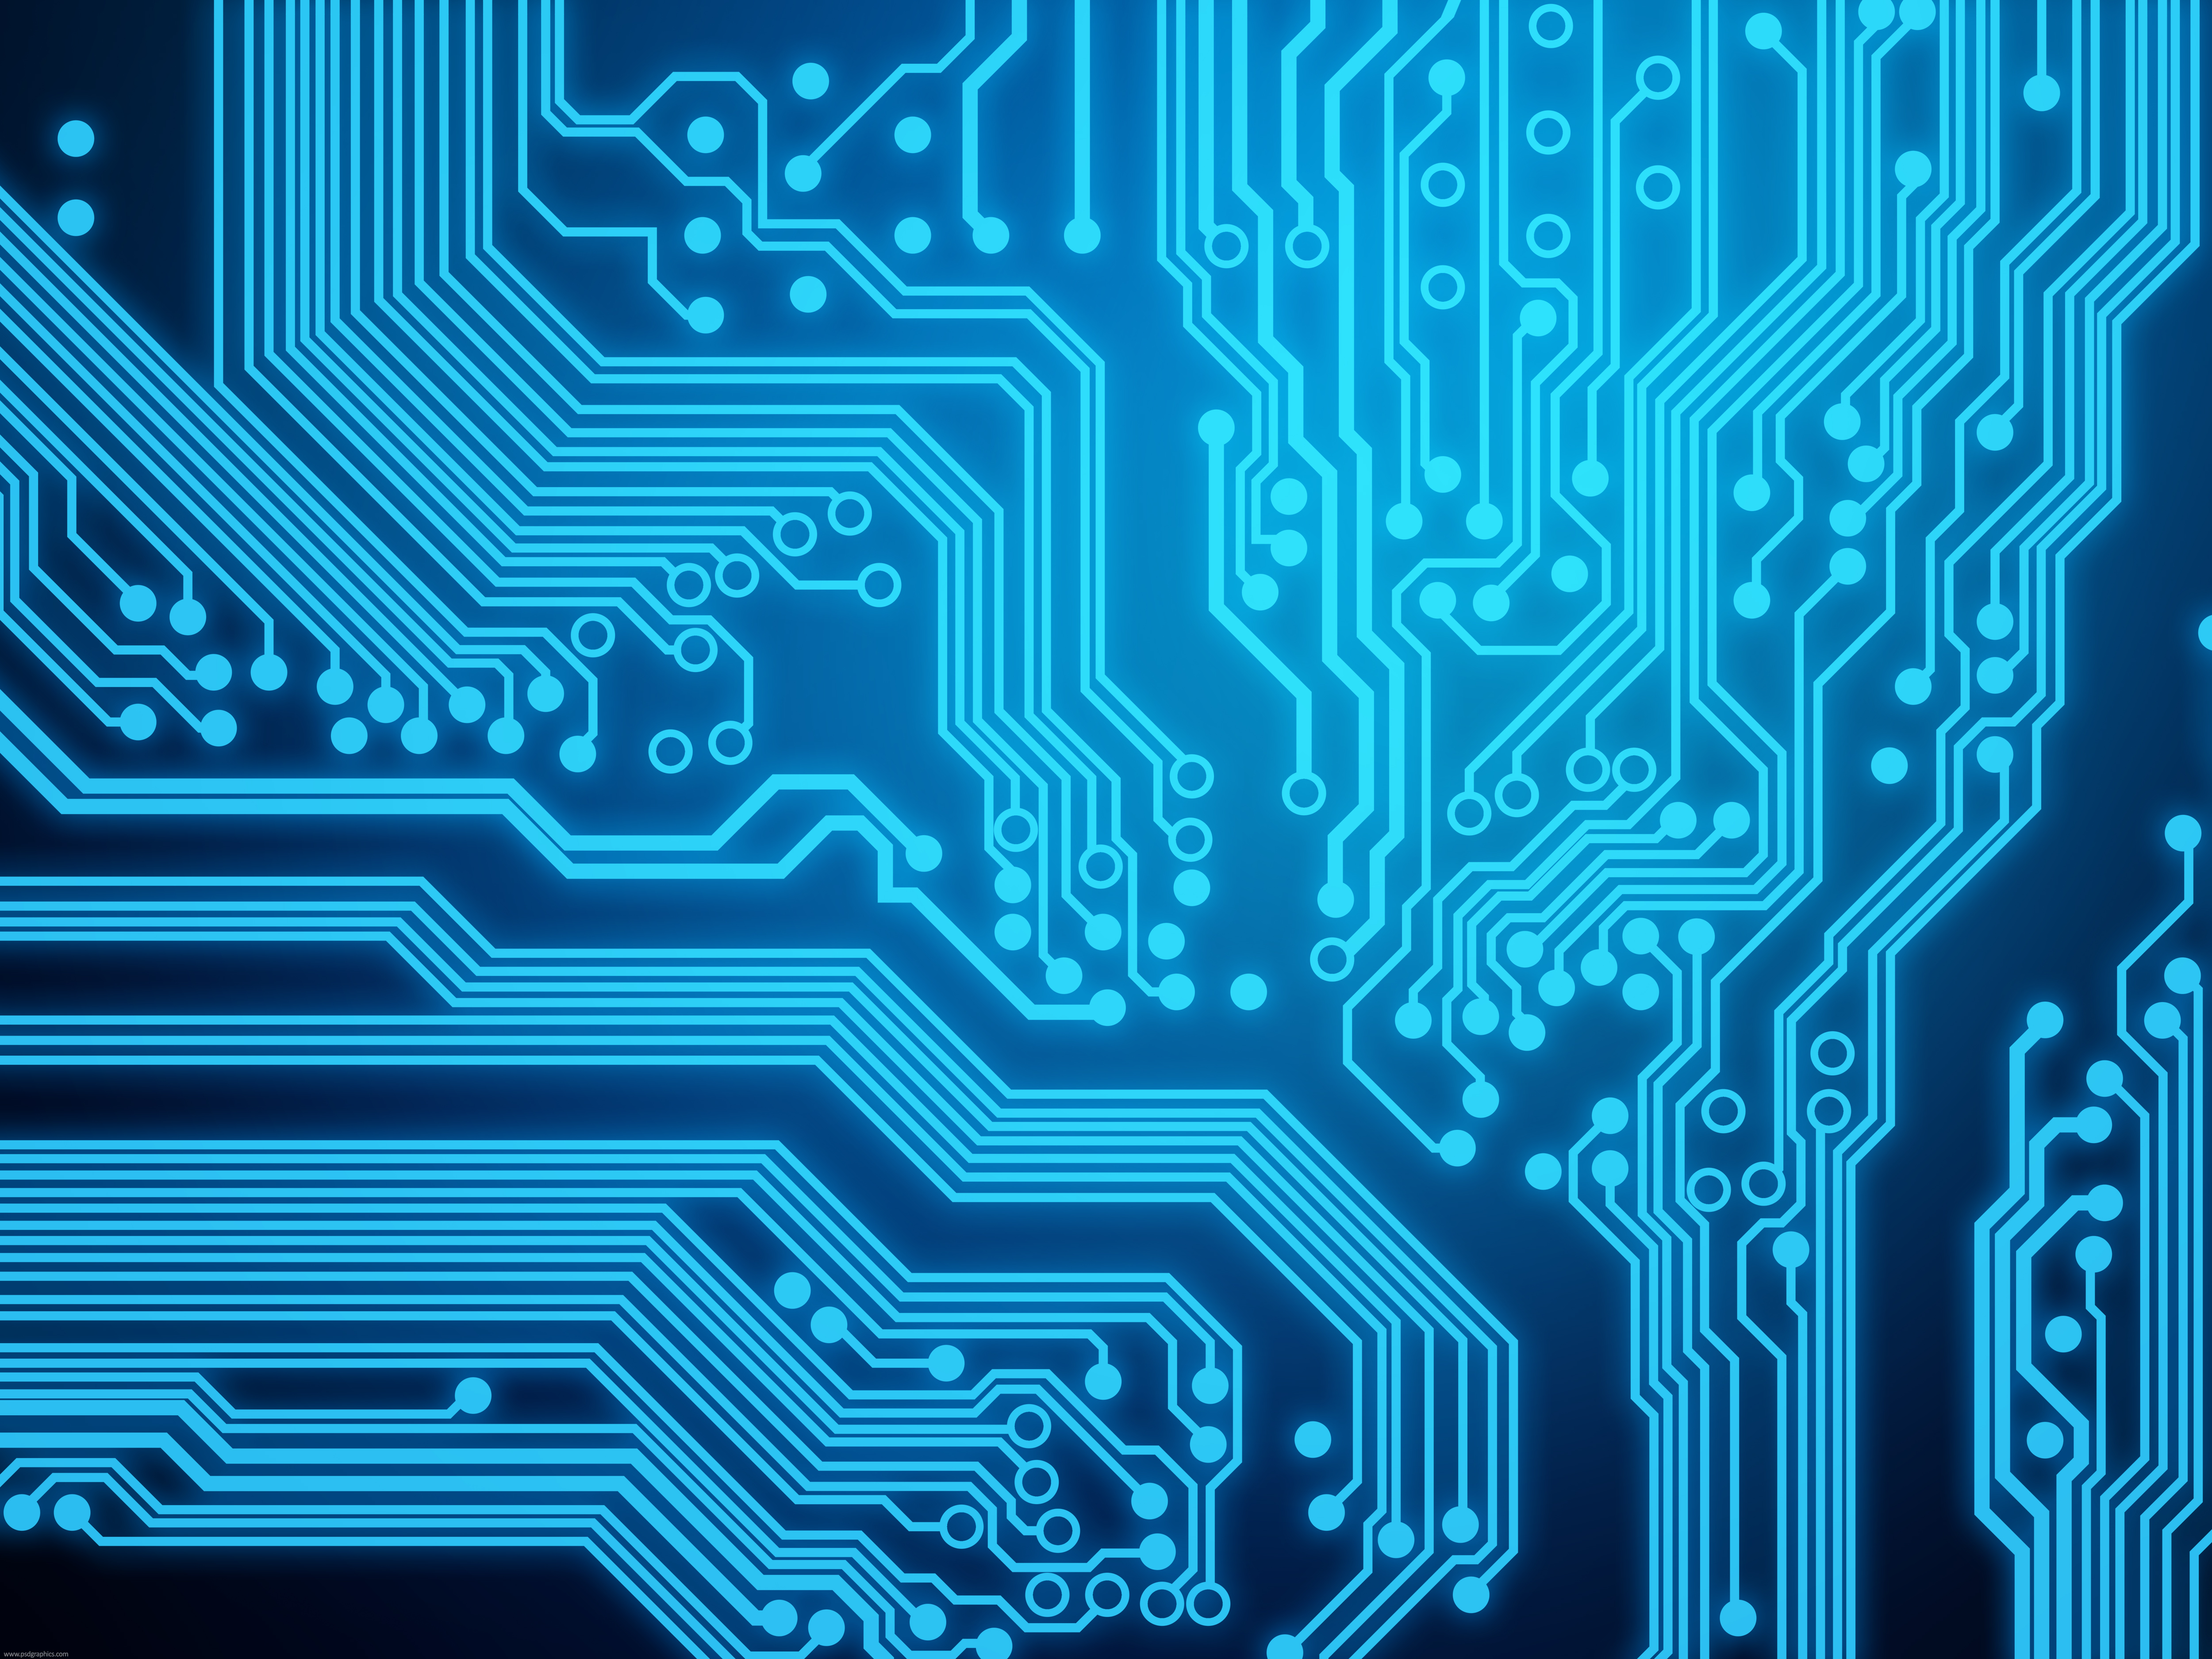 circuitry definition of circuitry by merriamwebster - HD2560×1600